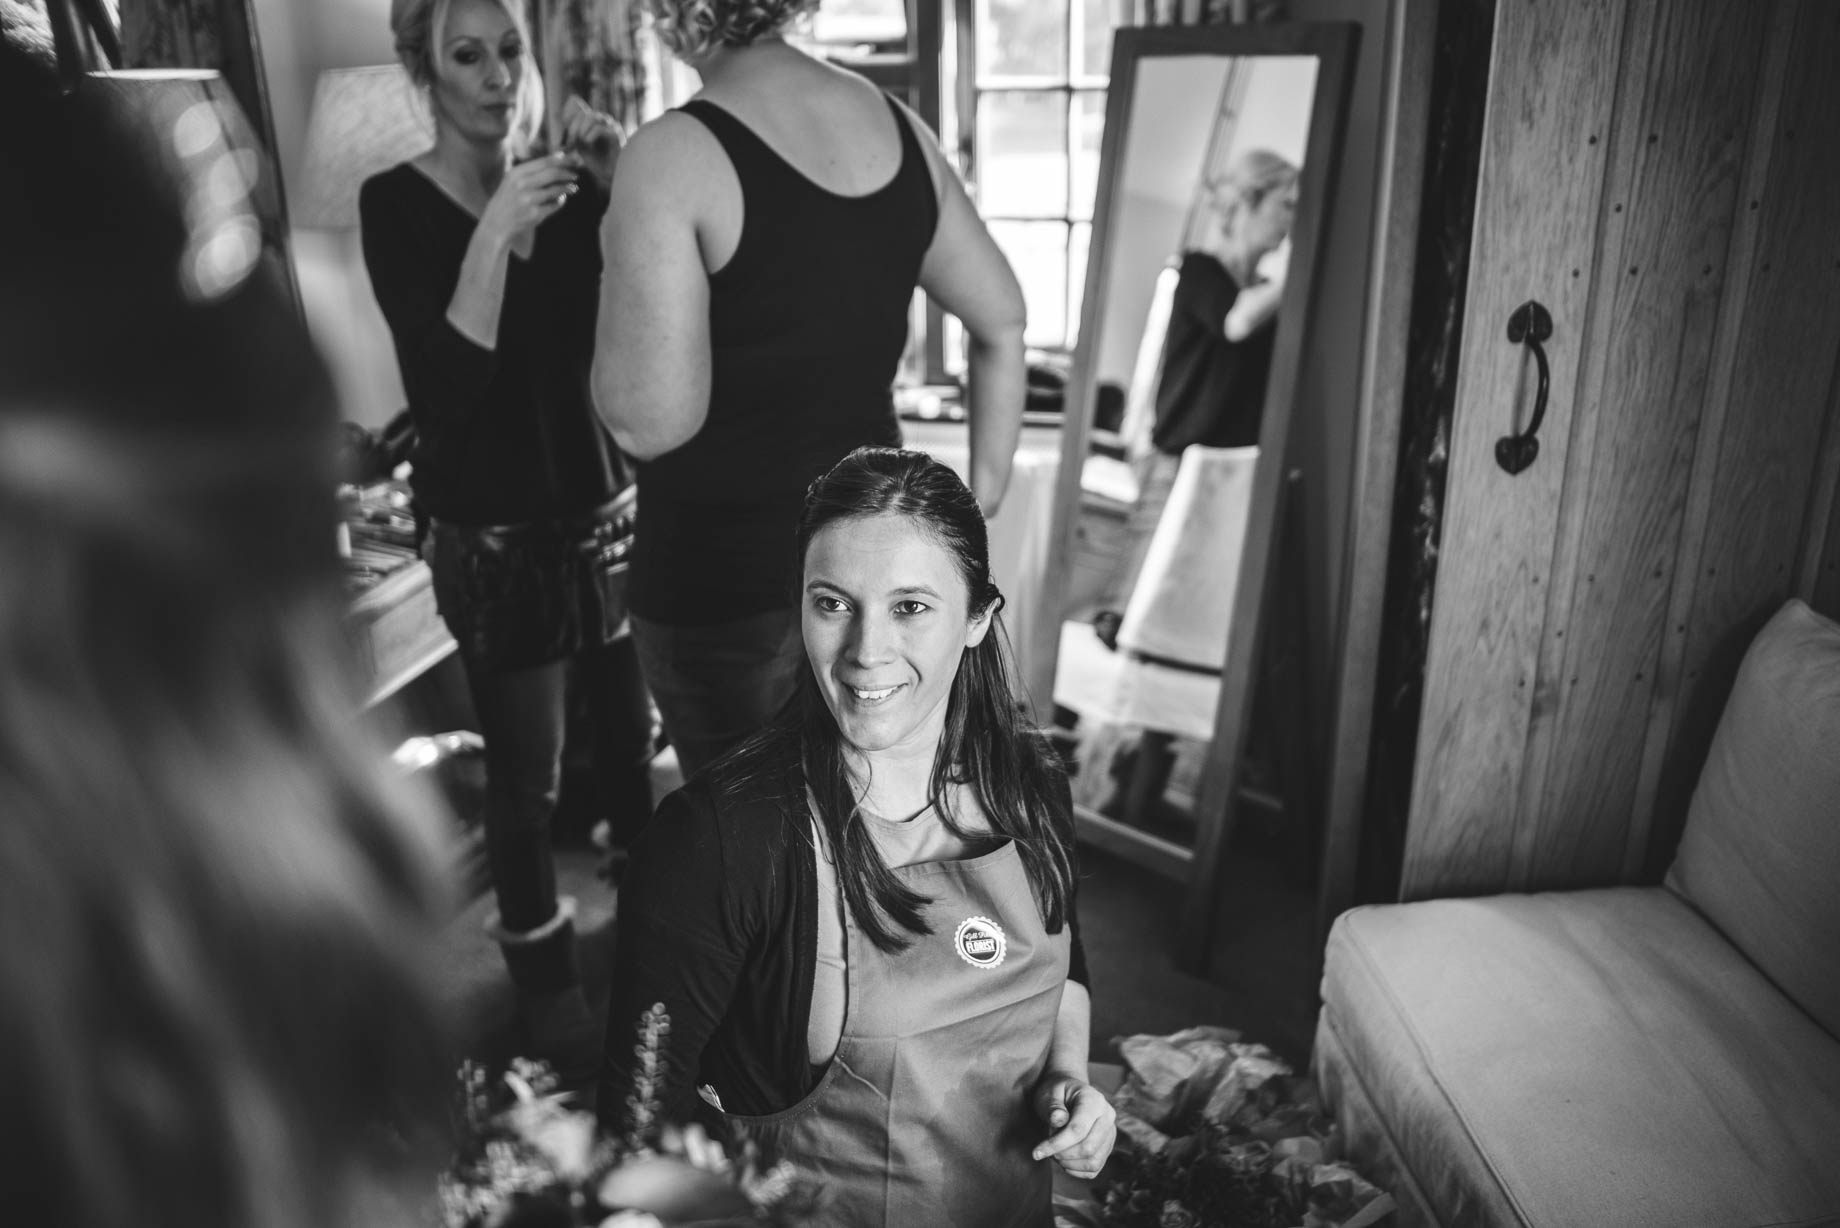 Gate Street Barn wedding photography - Guy Collier - Claire and Andy (32 of 192)